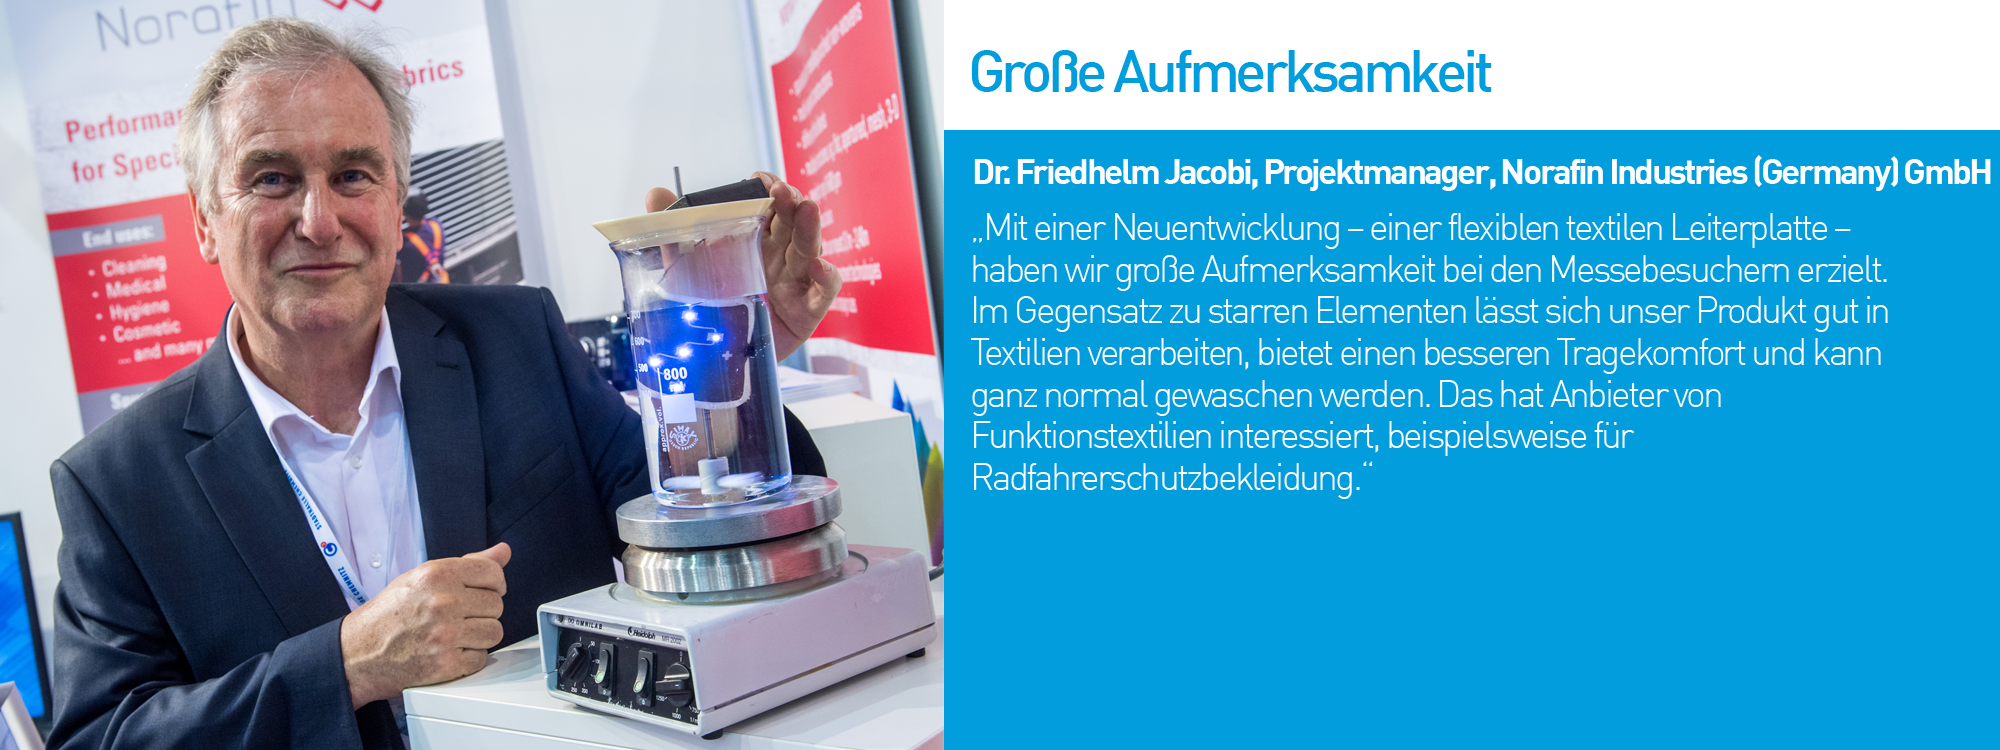 Dr. Friedhelm Jacobi, Projektmanager, Norafin Industries (Germany) GmbH